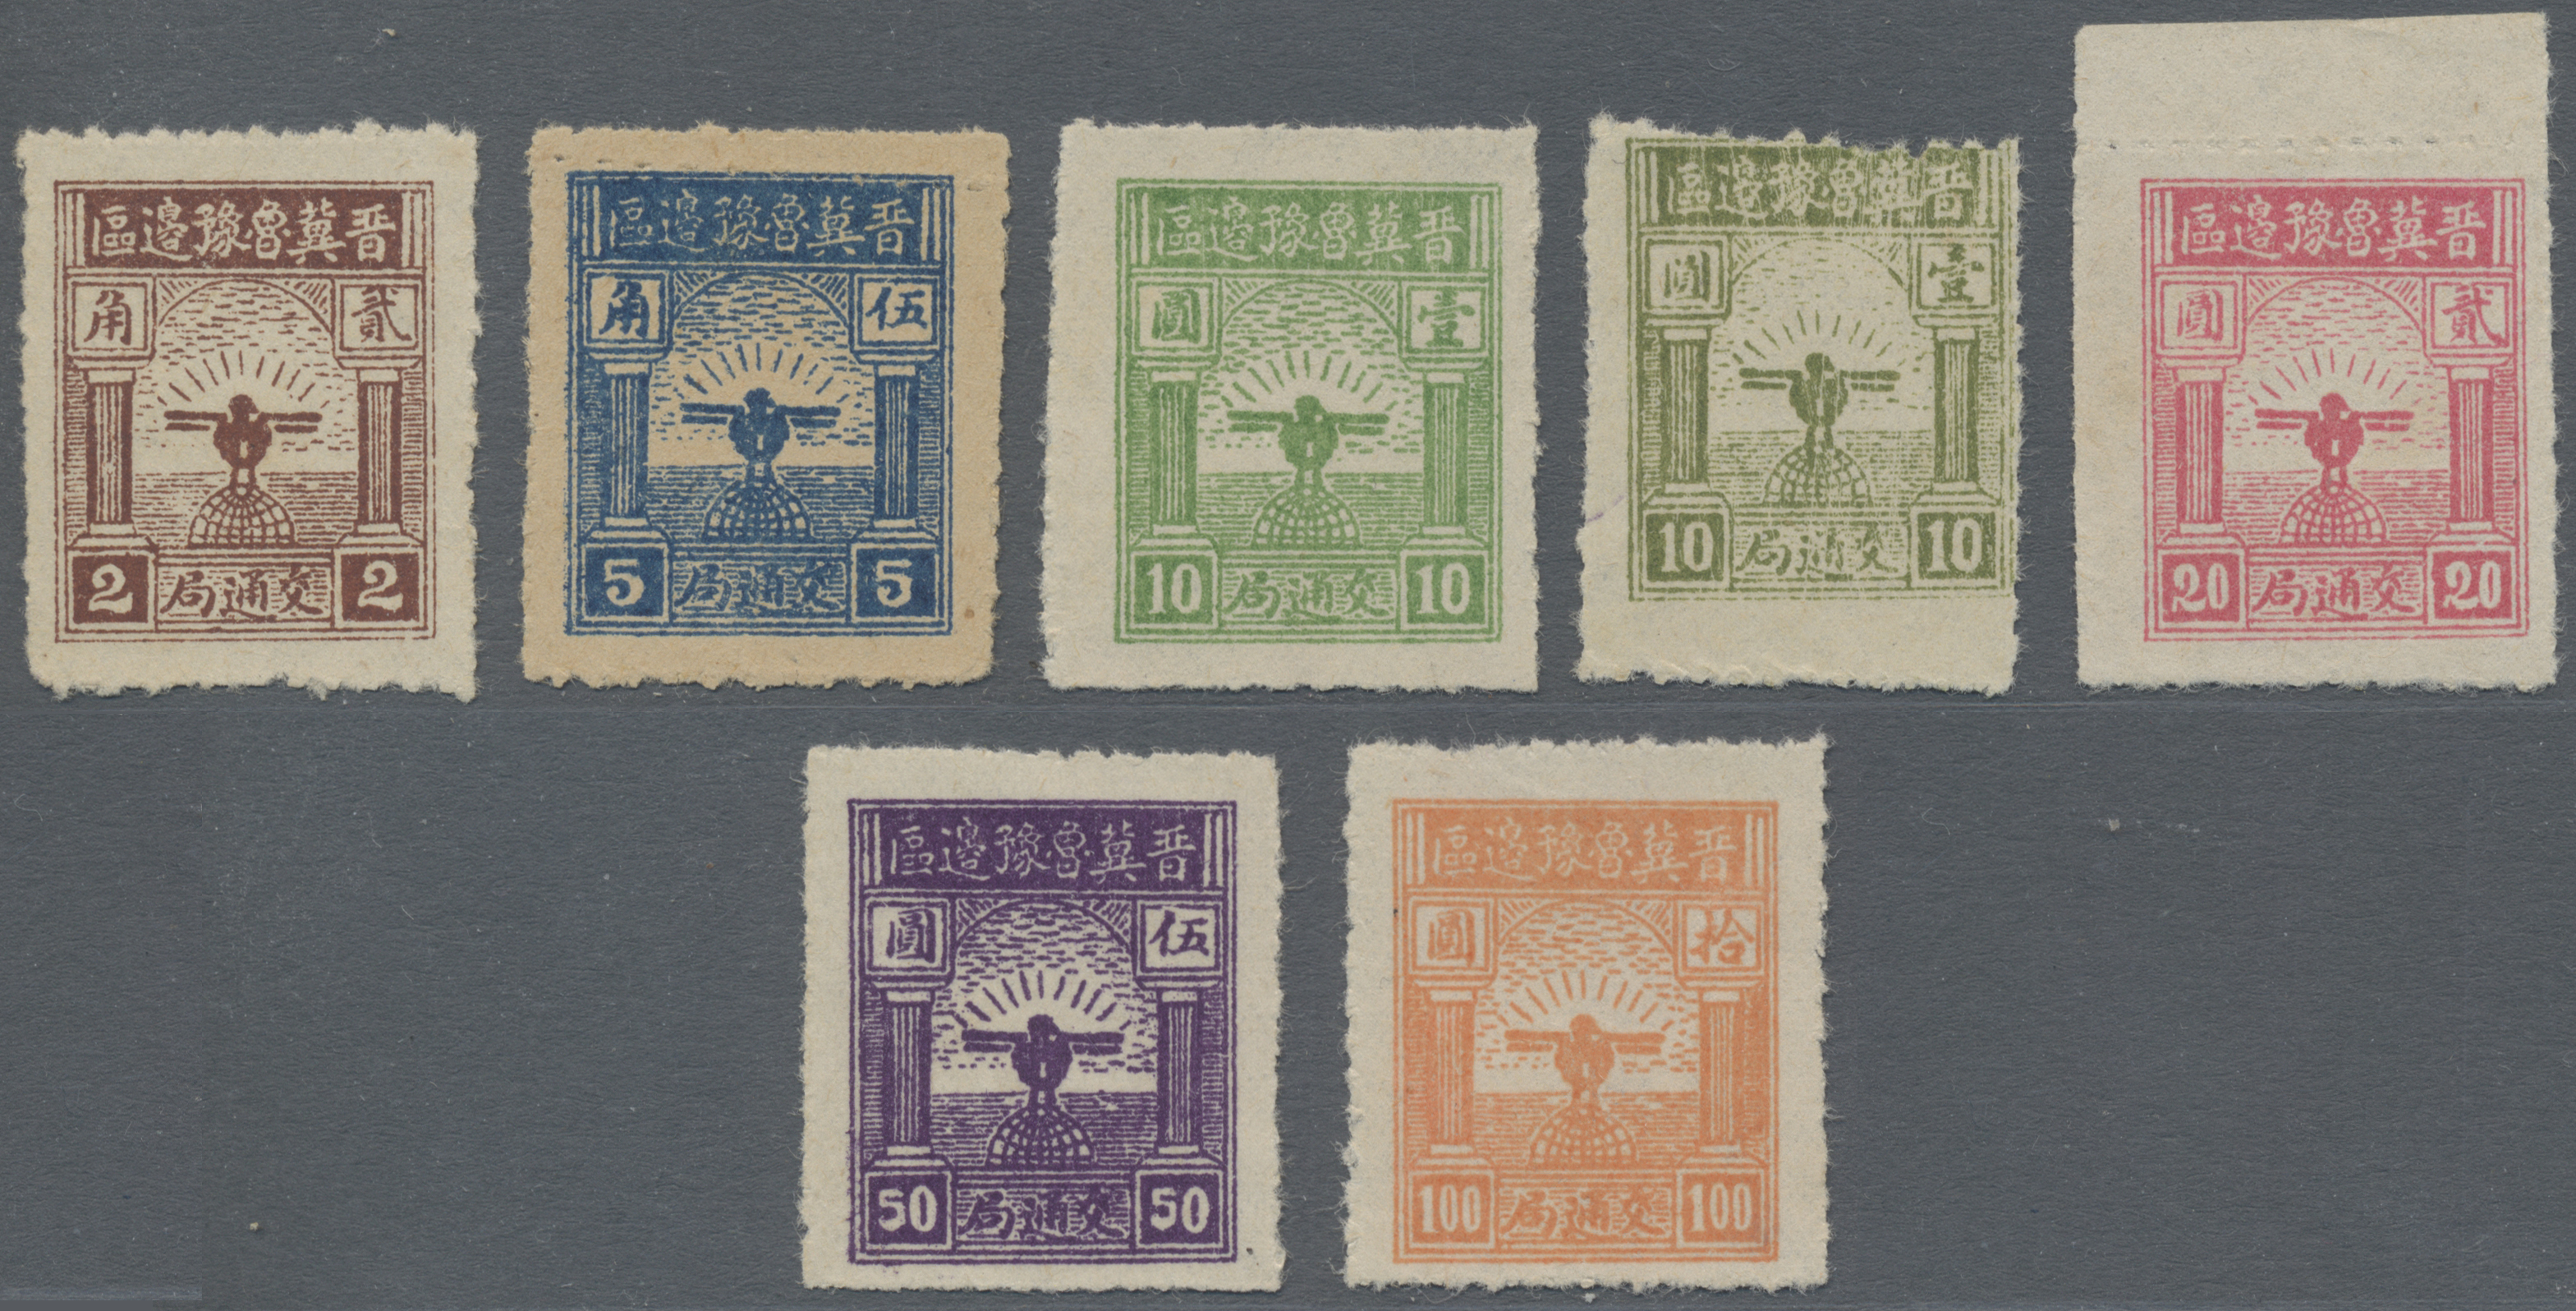 Lot 05022 - China - Volksrepublik - Provinzen  -  Auktionshaus Christoph Gärtner GmbH & Co. KG Sale #46 Special Auction China - including Liberated Areas